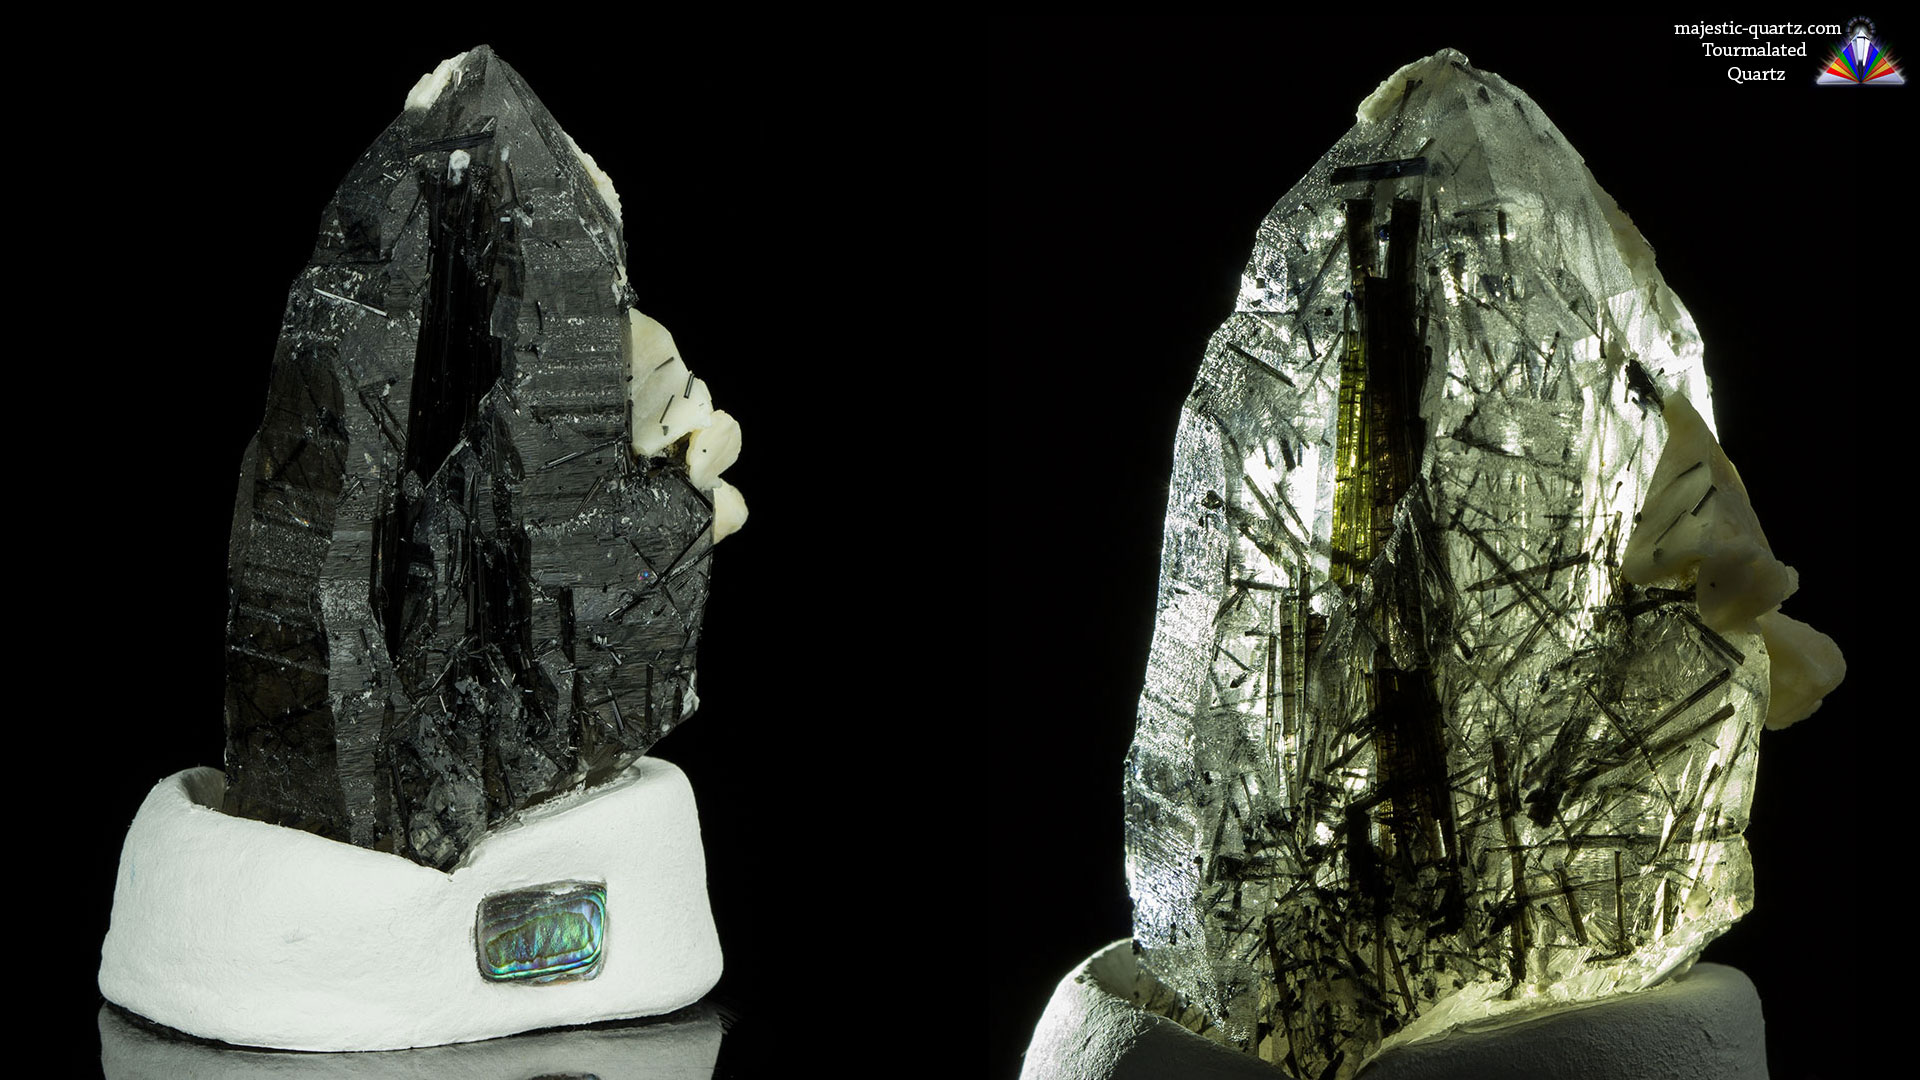 tourmalated quartz properties and meaning   photos